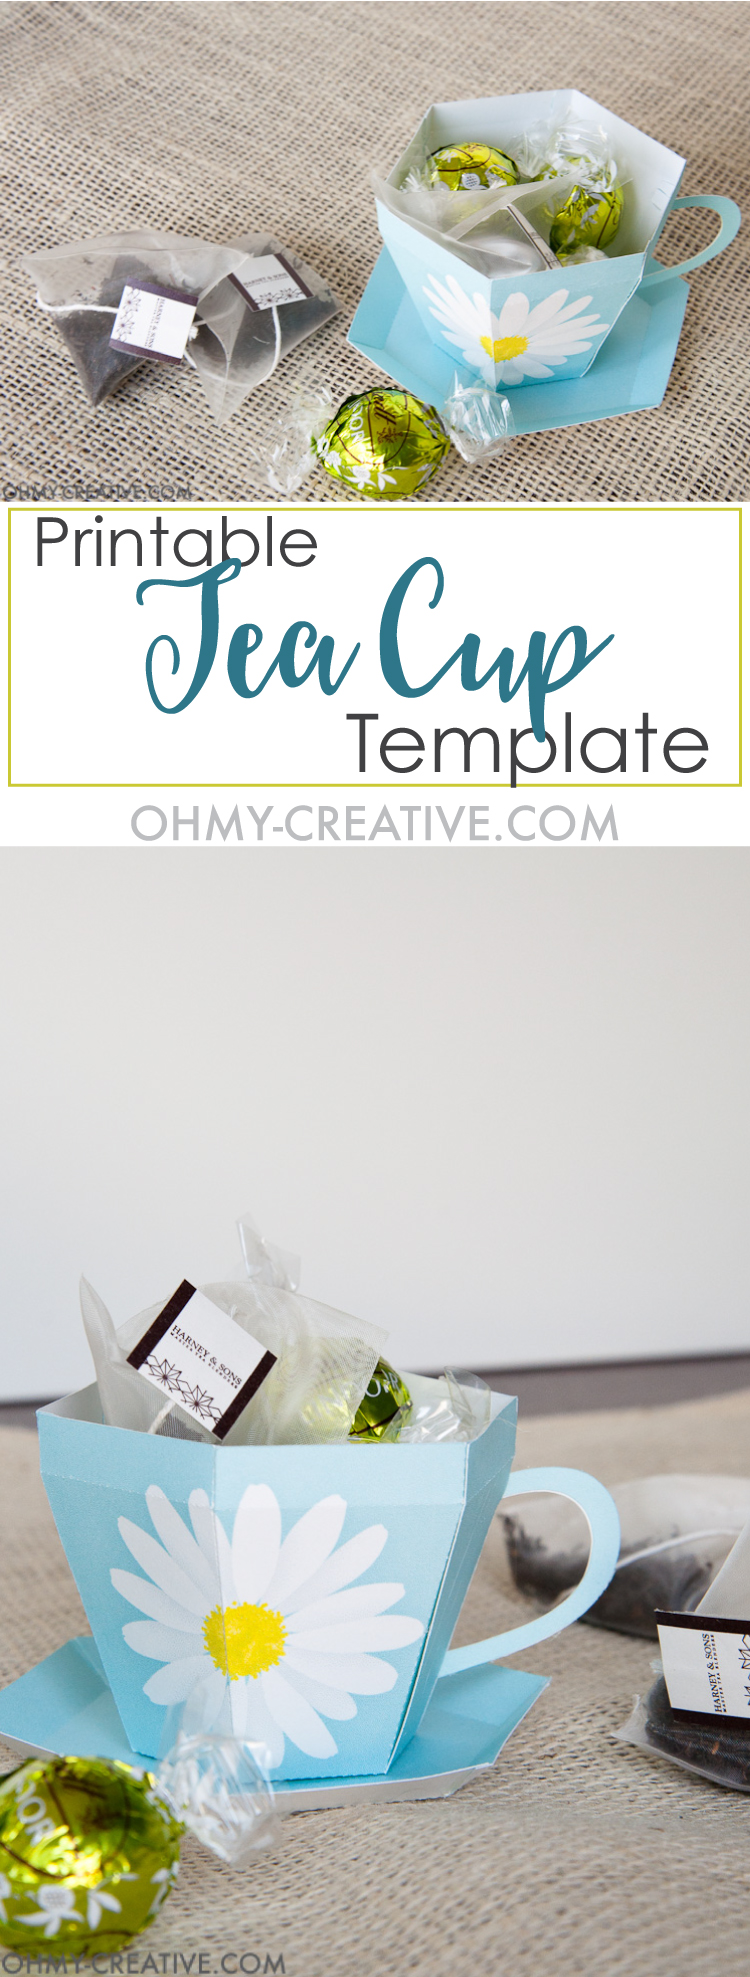 Create the perfect gift for spring with this Tea Cup Template. A tea cup gift for Mother's Day, Easter or Teacher Appreciation. OHMY-CREATIVE.COM   Paper Tea Cup   3D Tea Cup   Tea Cup Gift   Spring Gift Ideas   Paper Tea Cup Template   Mother's Day Gift Idea   Teacher Appreciation Gift   Bridal Shower Favor